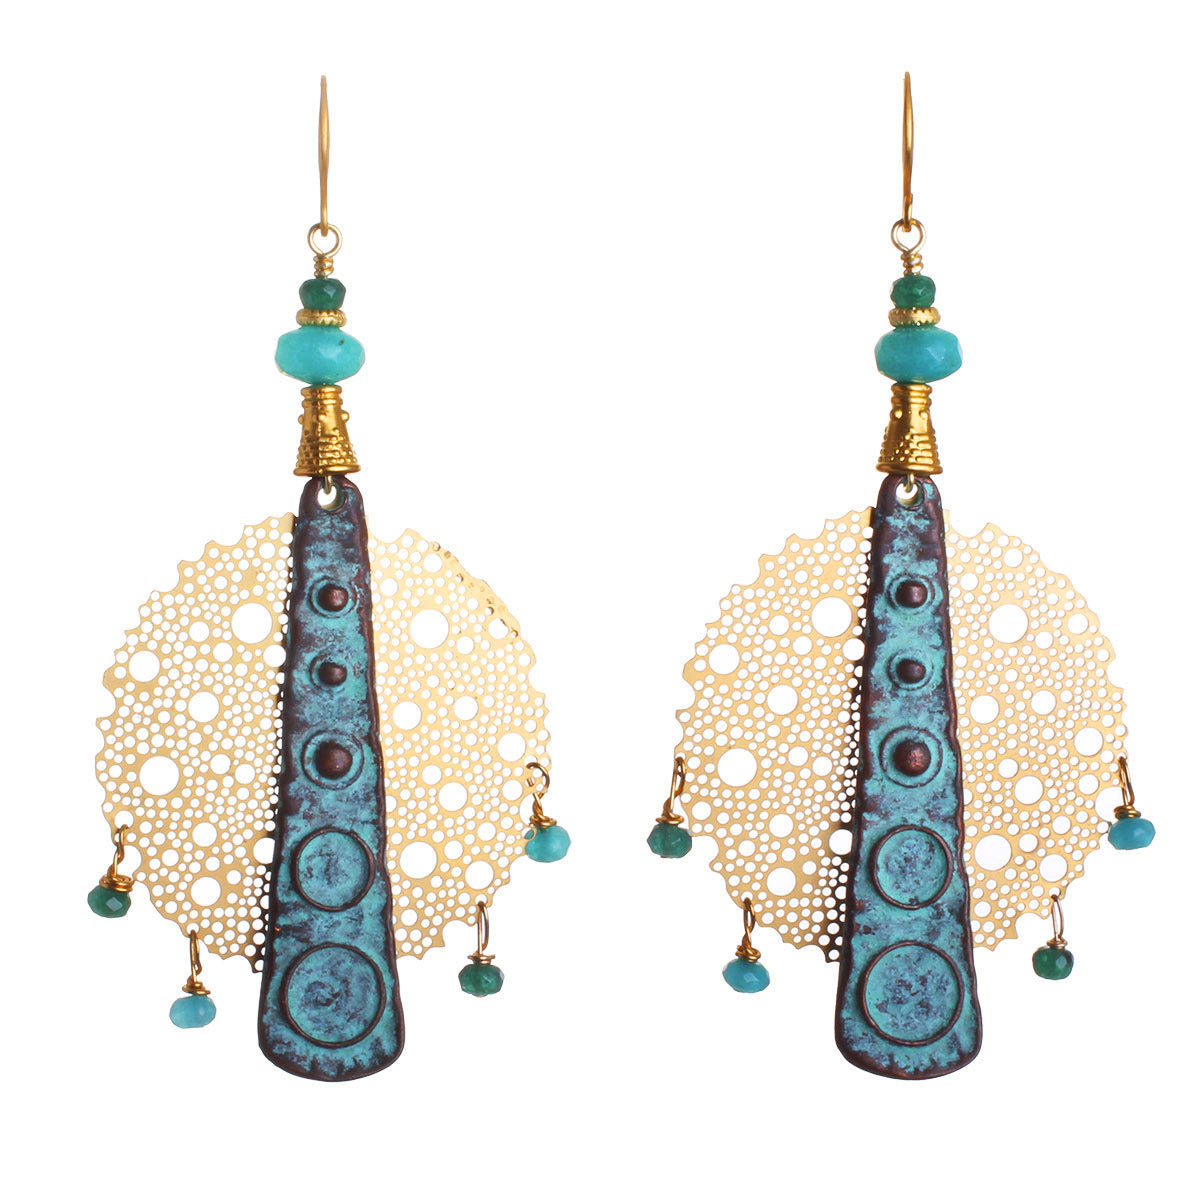 N°529 The Turquoise Lagoon Addiction Statement Earrings